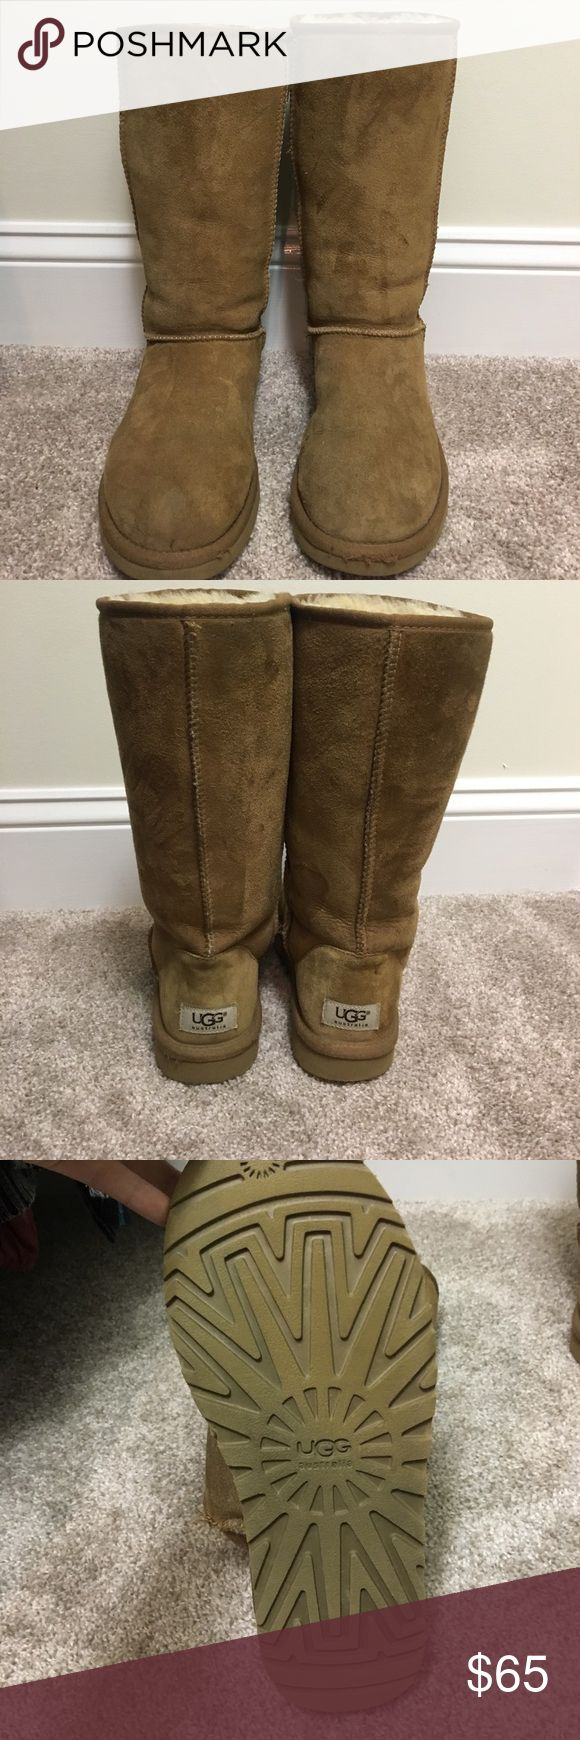 Original Uggs - Tall Tall, tan UGG boots. Gently used and in great condition! UGG Shoes Winter & Rain Boots